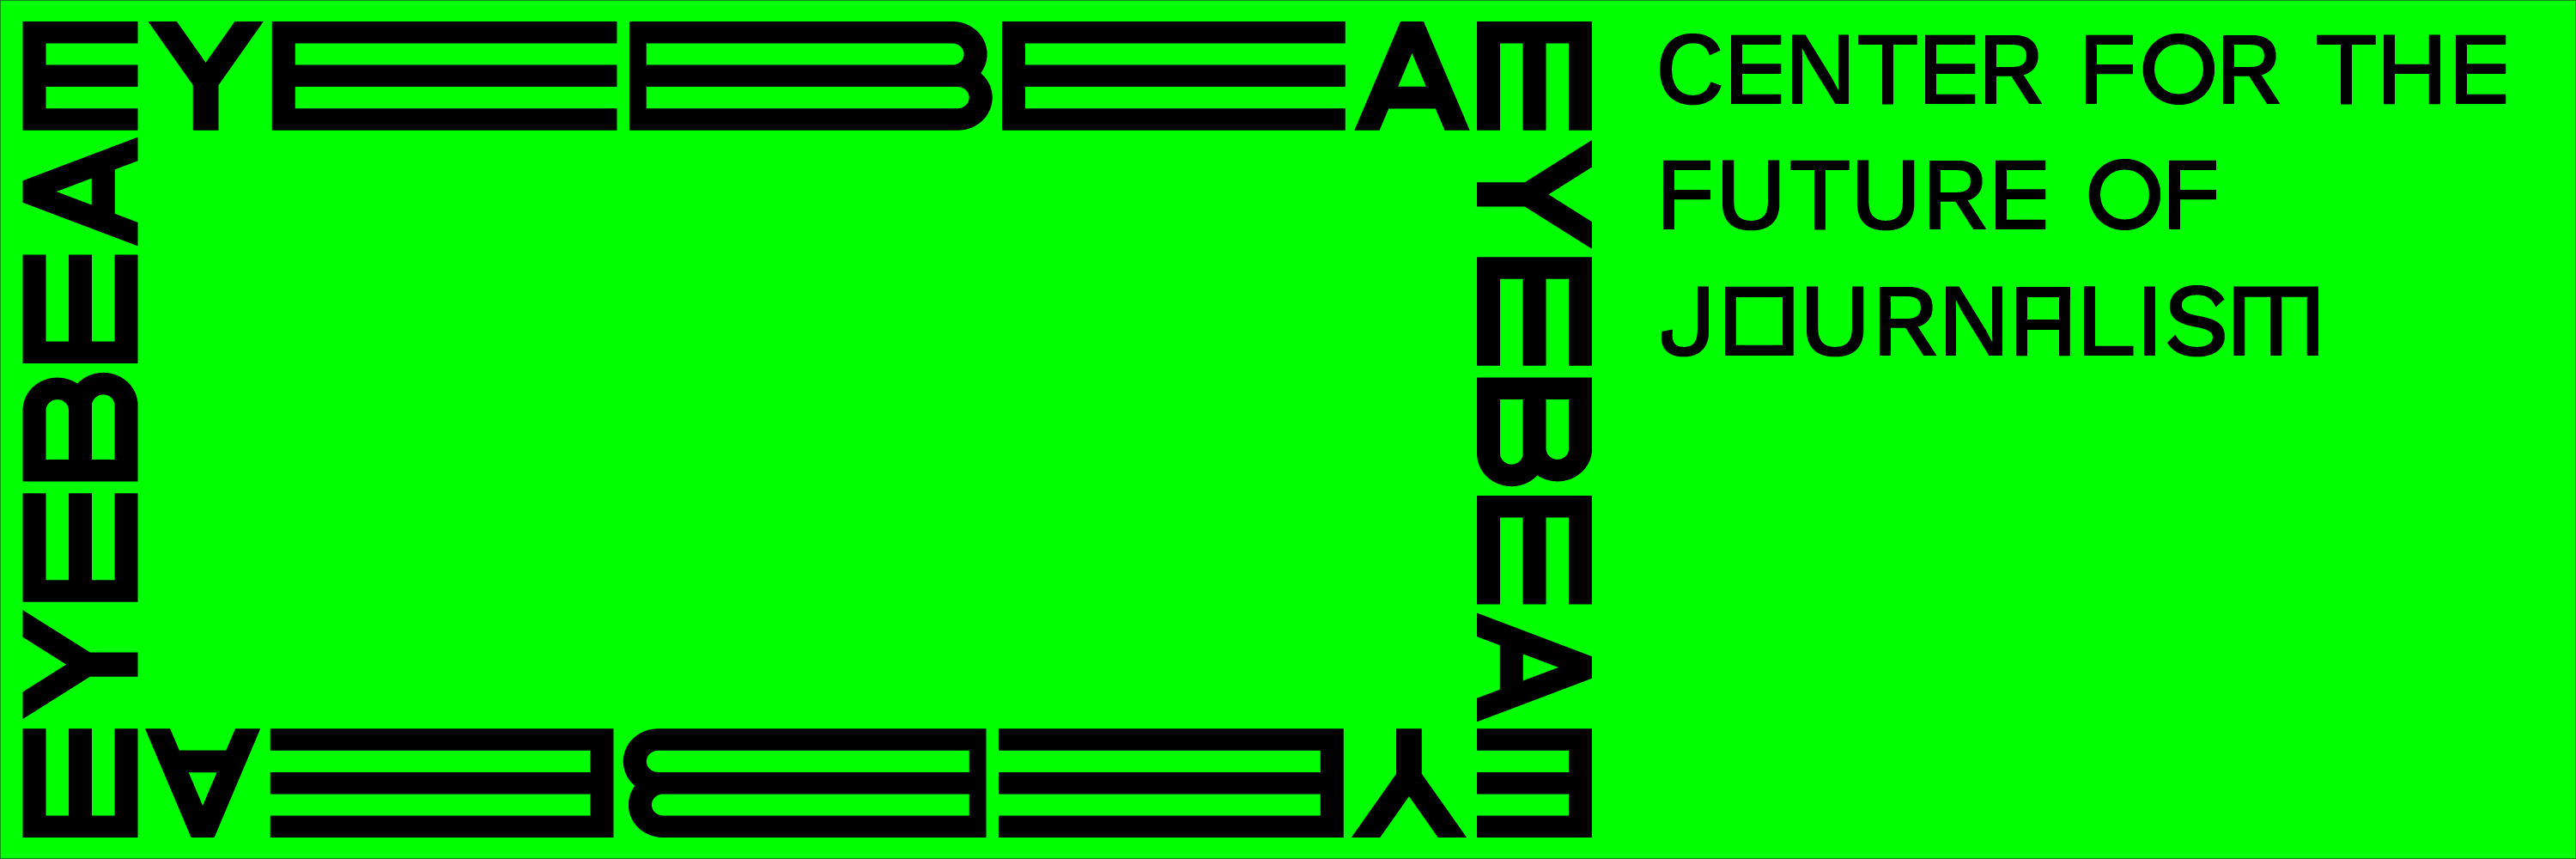 Eyebeam Center for the Future of Journalism graphic in lime green.